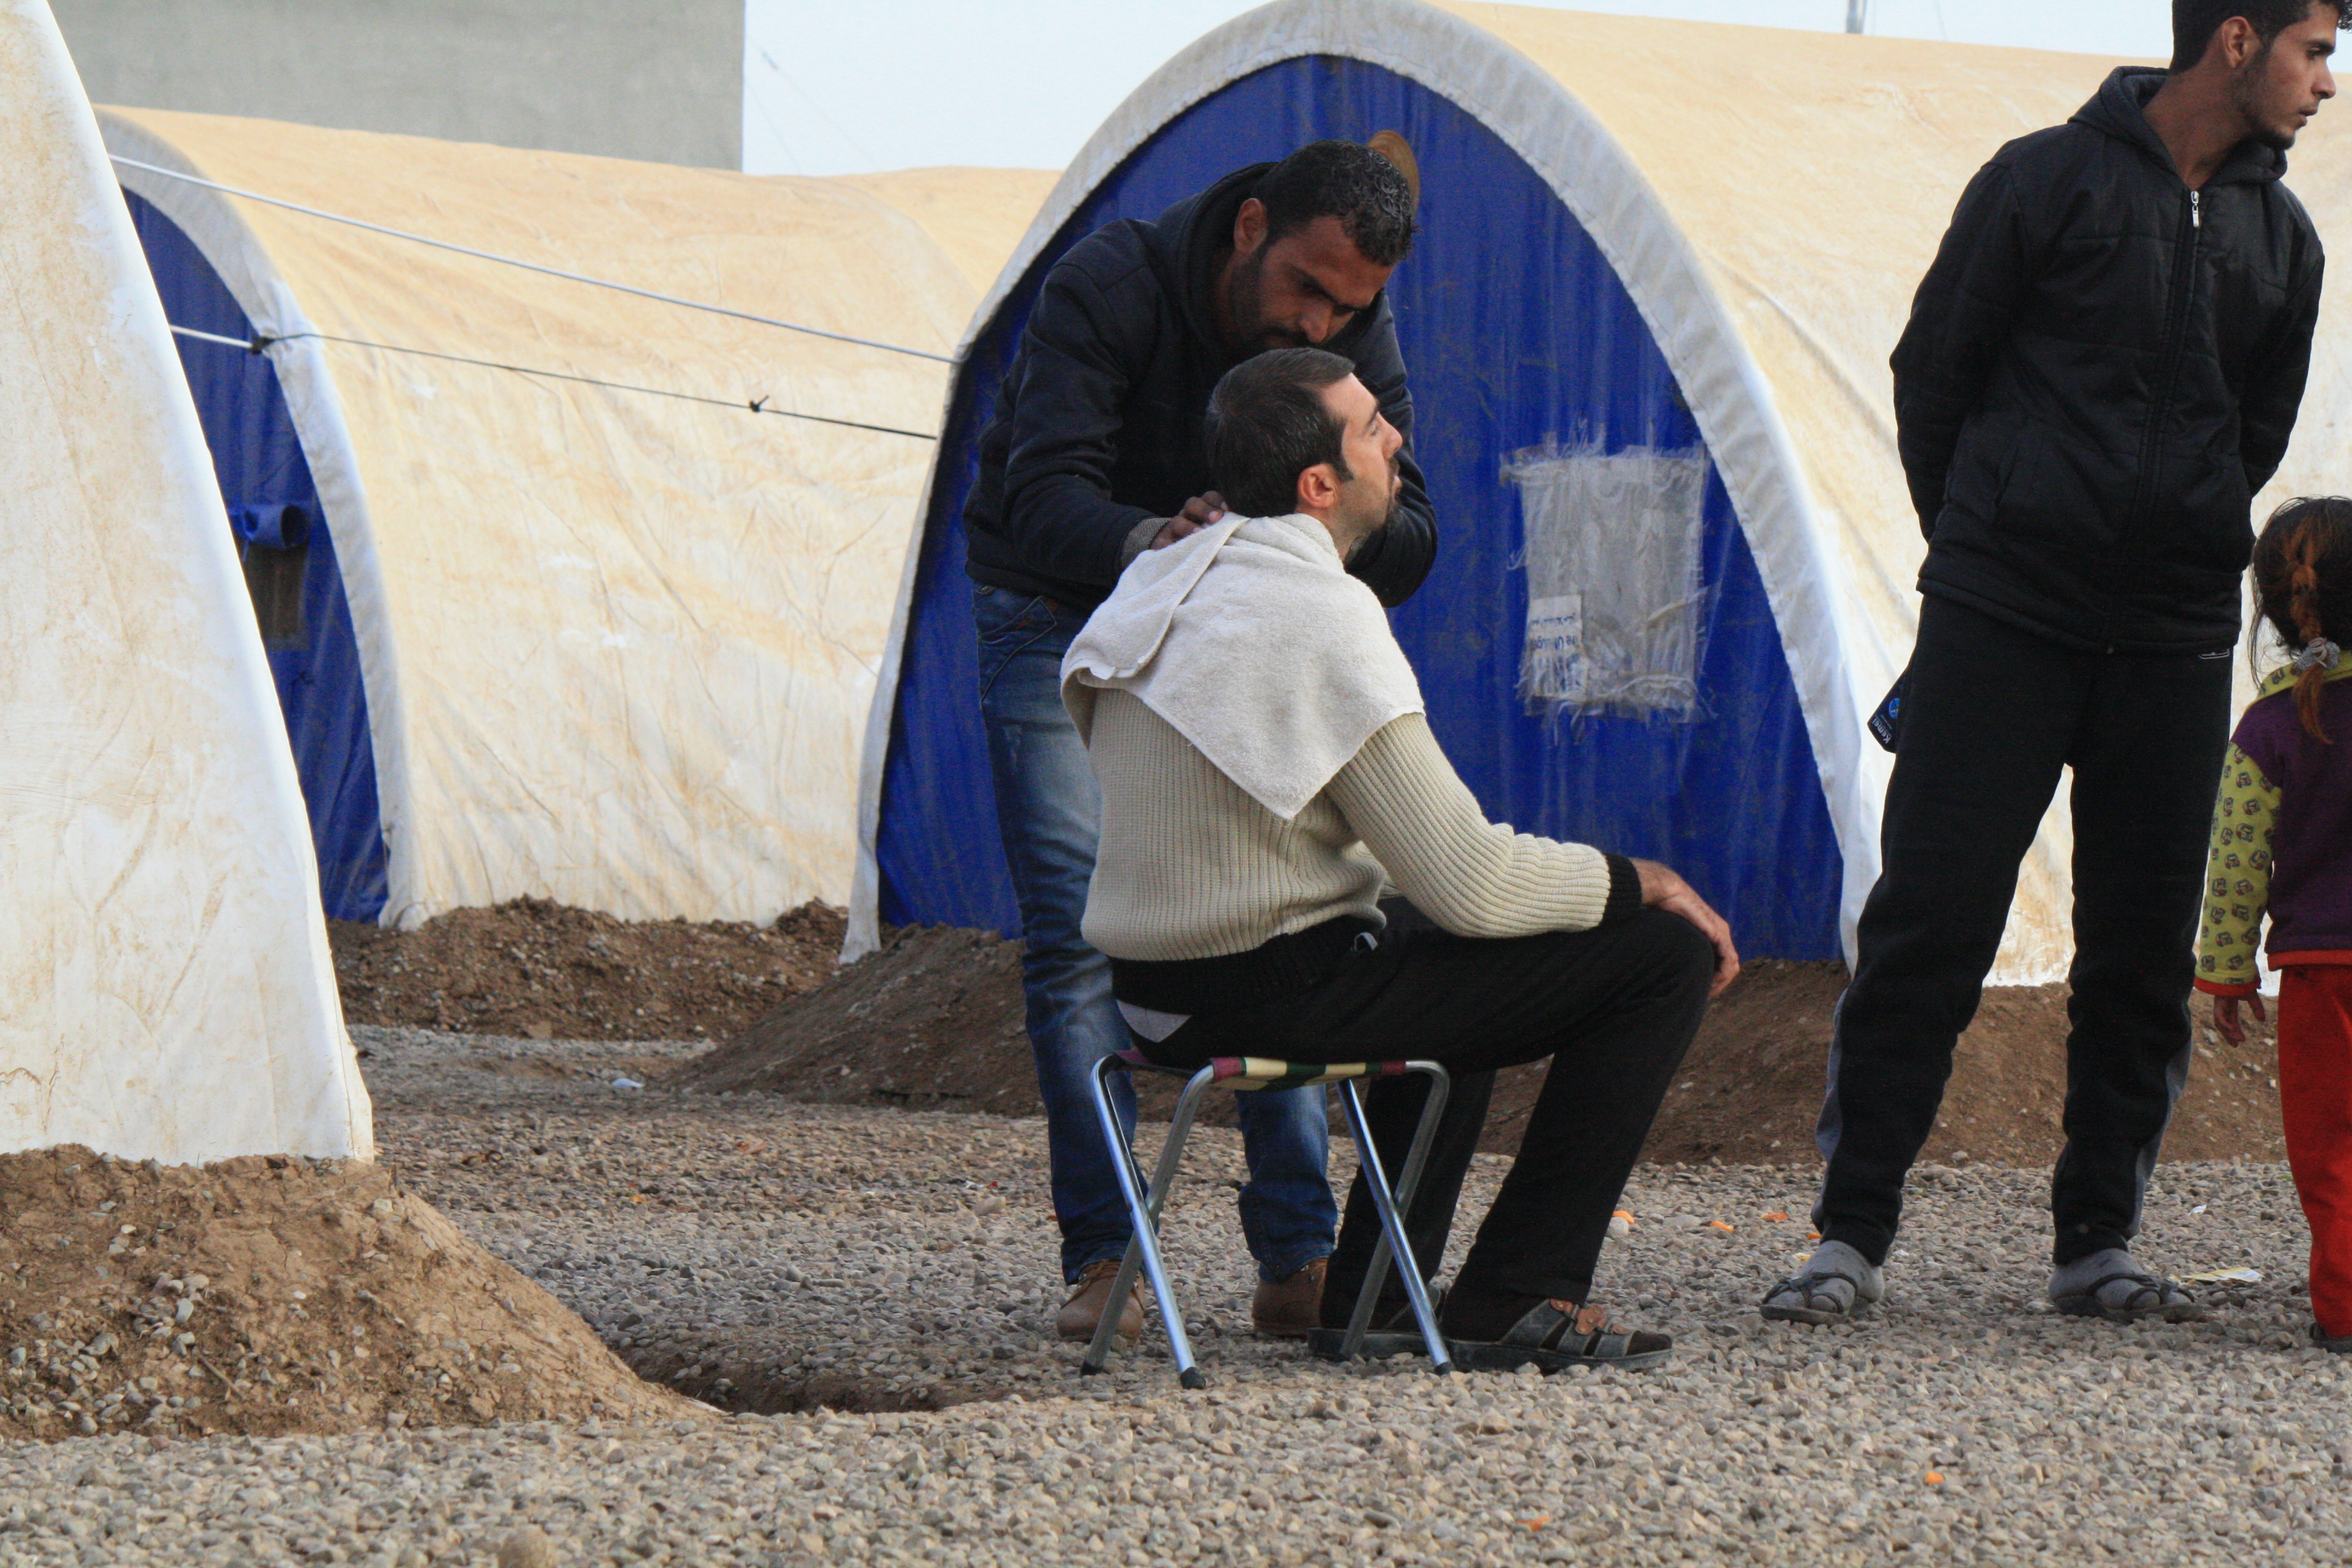 Many former Mosul barbers say they continued to practice despite the danger because they had no other way to buy food for their families, at the Khazir camp in Kurdish Iraq, Dec. 13, 2016. (H. Shekha/VOA)